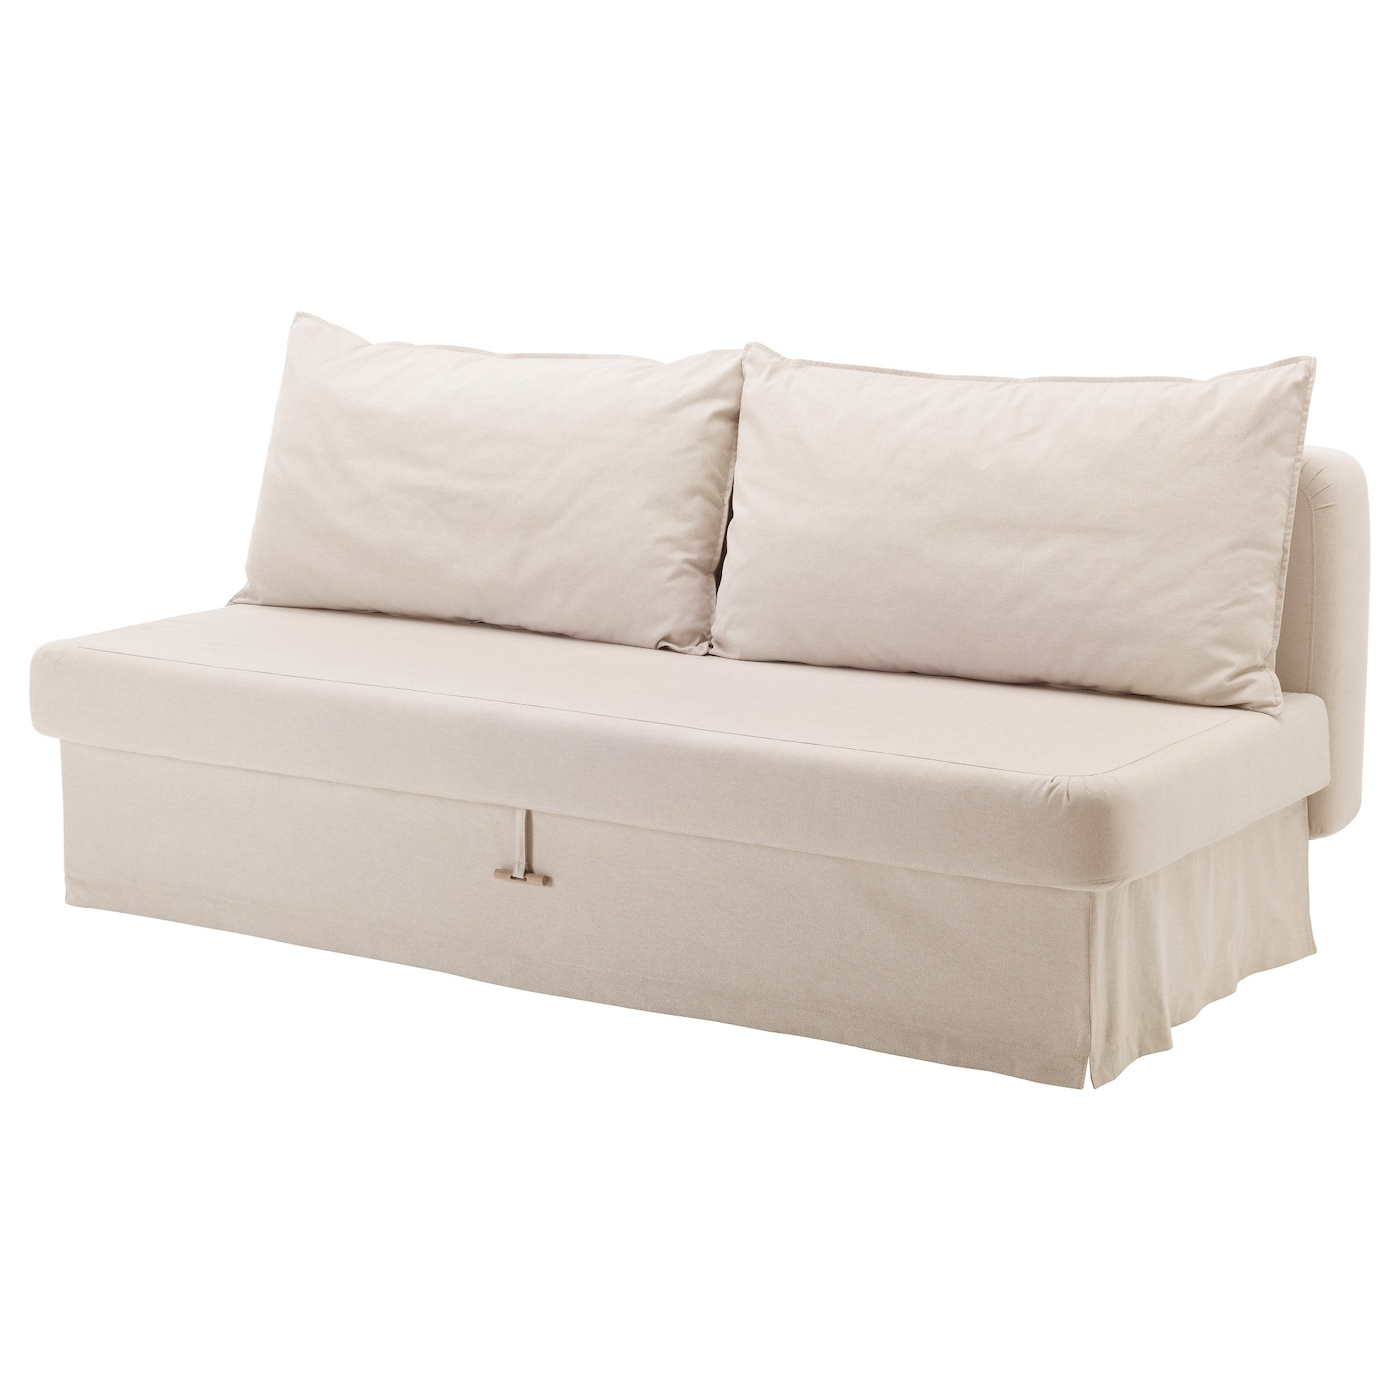 Himmene three seat sofa bed lofallet beige ikea for Sofa 170 cm breit